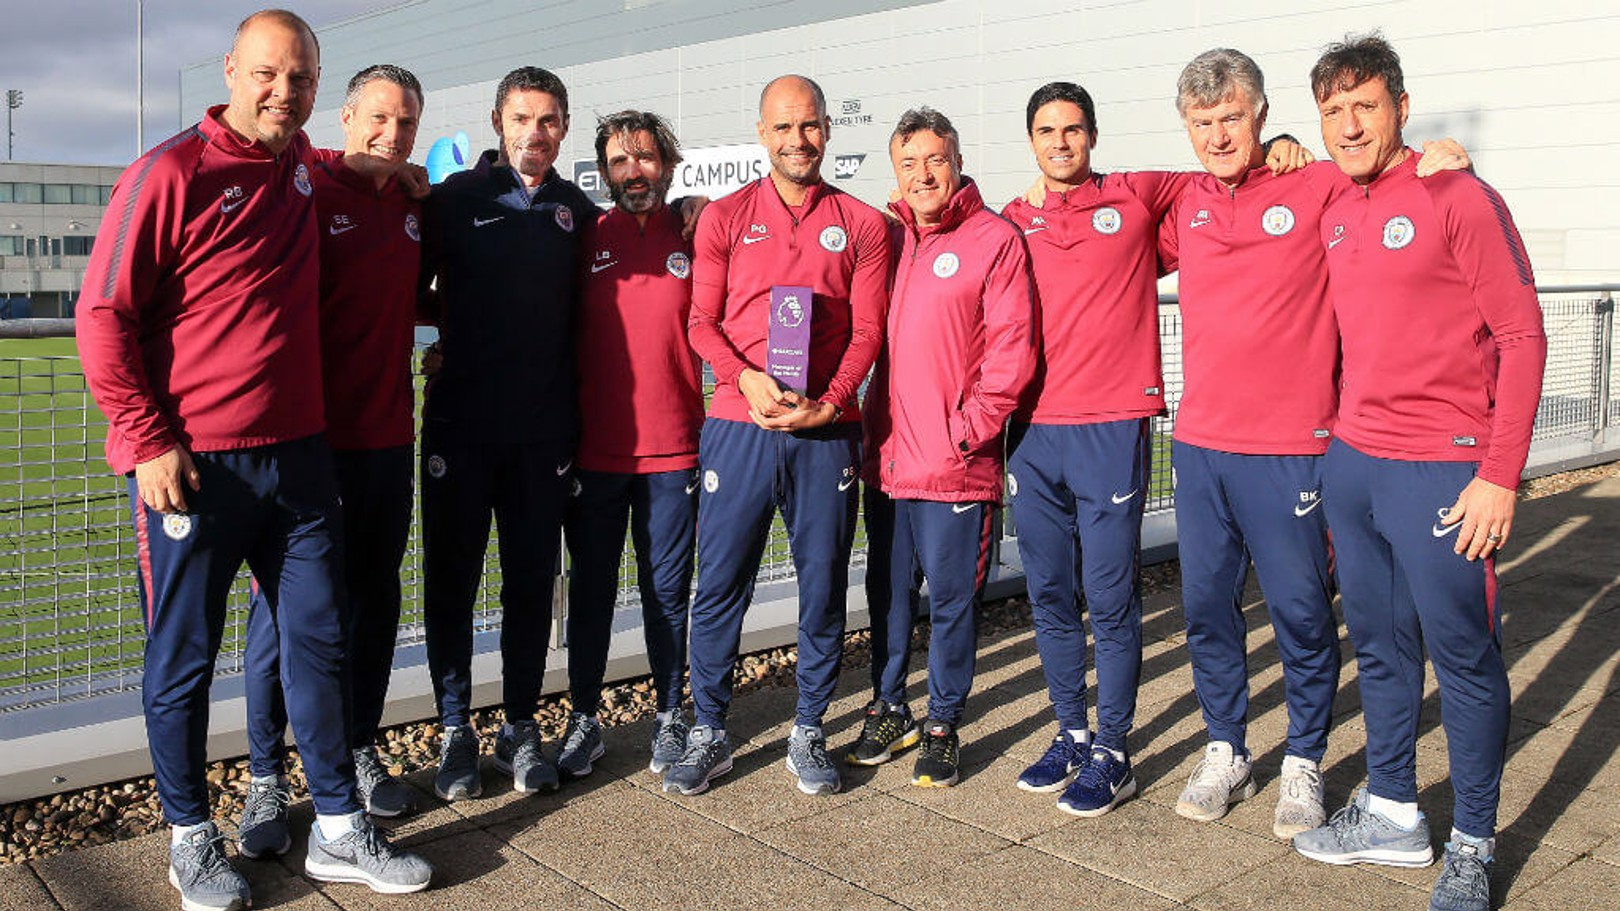 PL AWARDS: Pep has landed his second consecutive Manager of the Month award